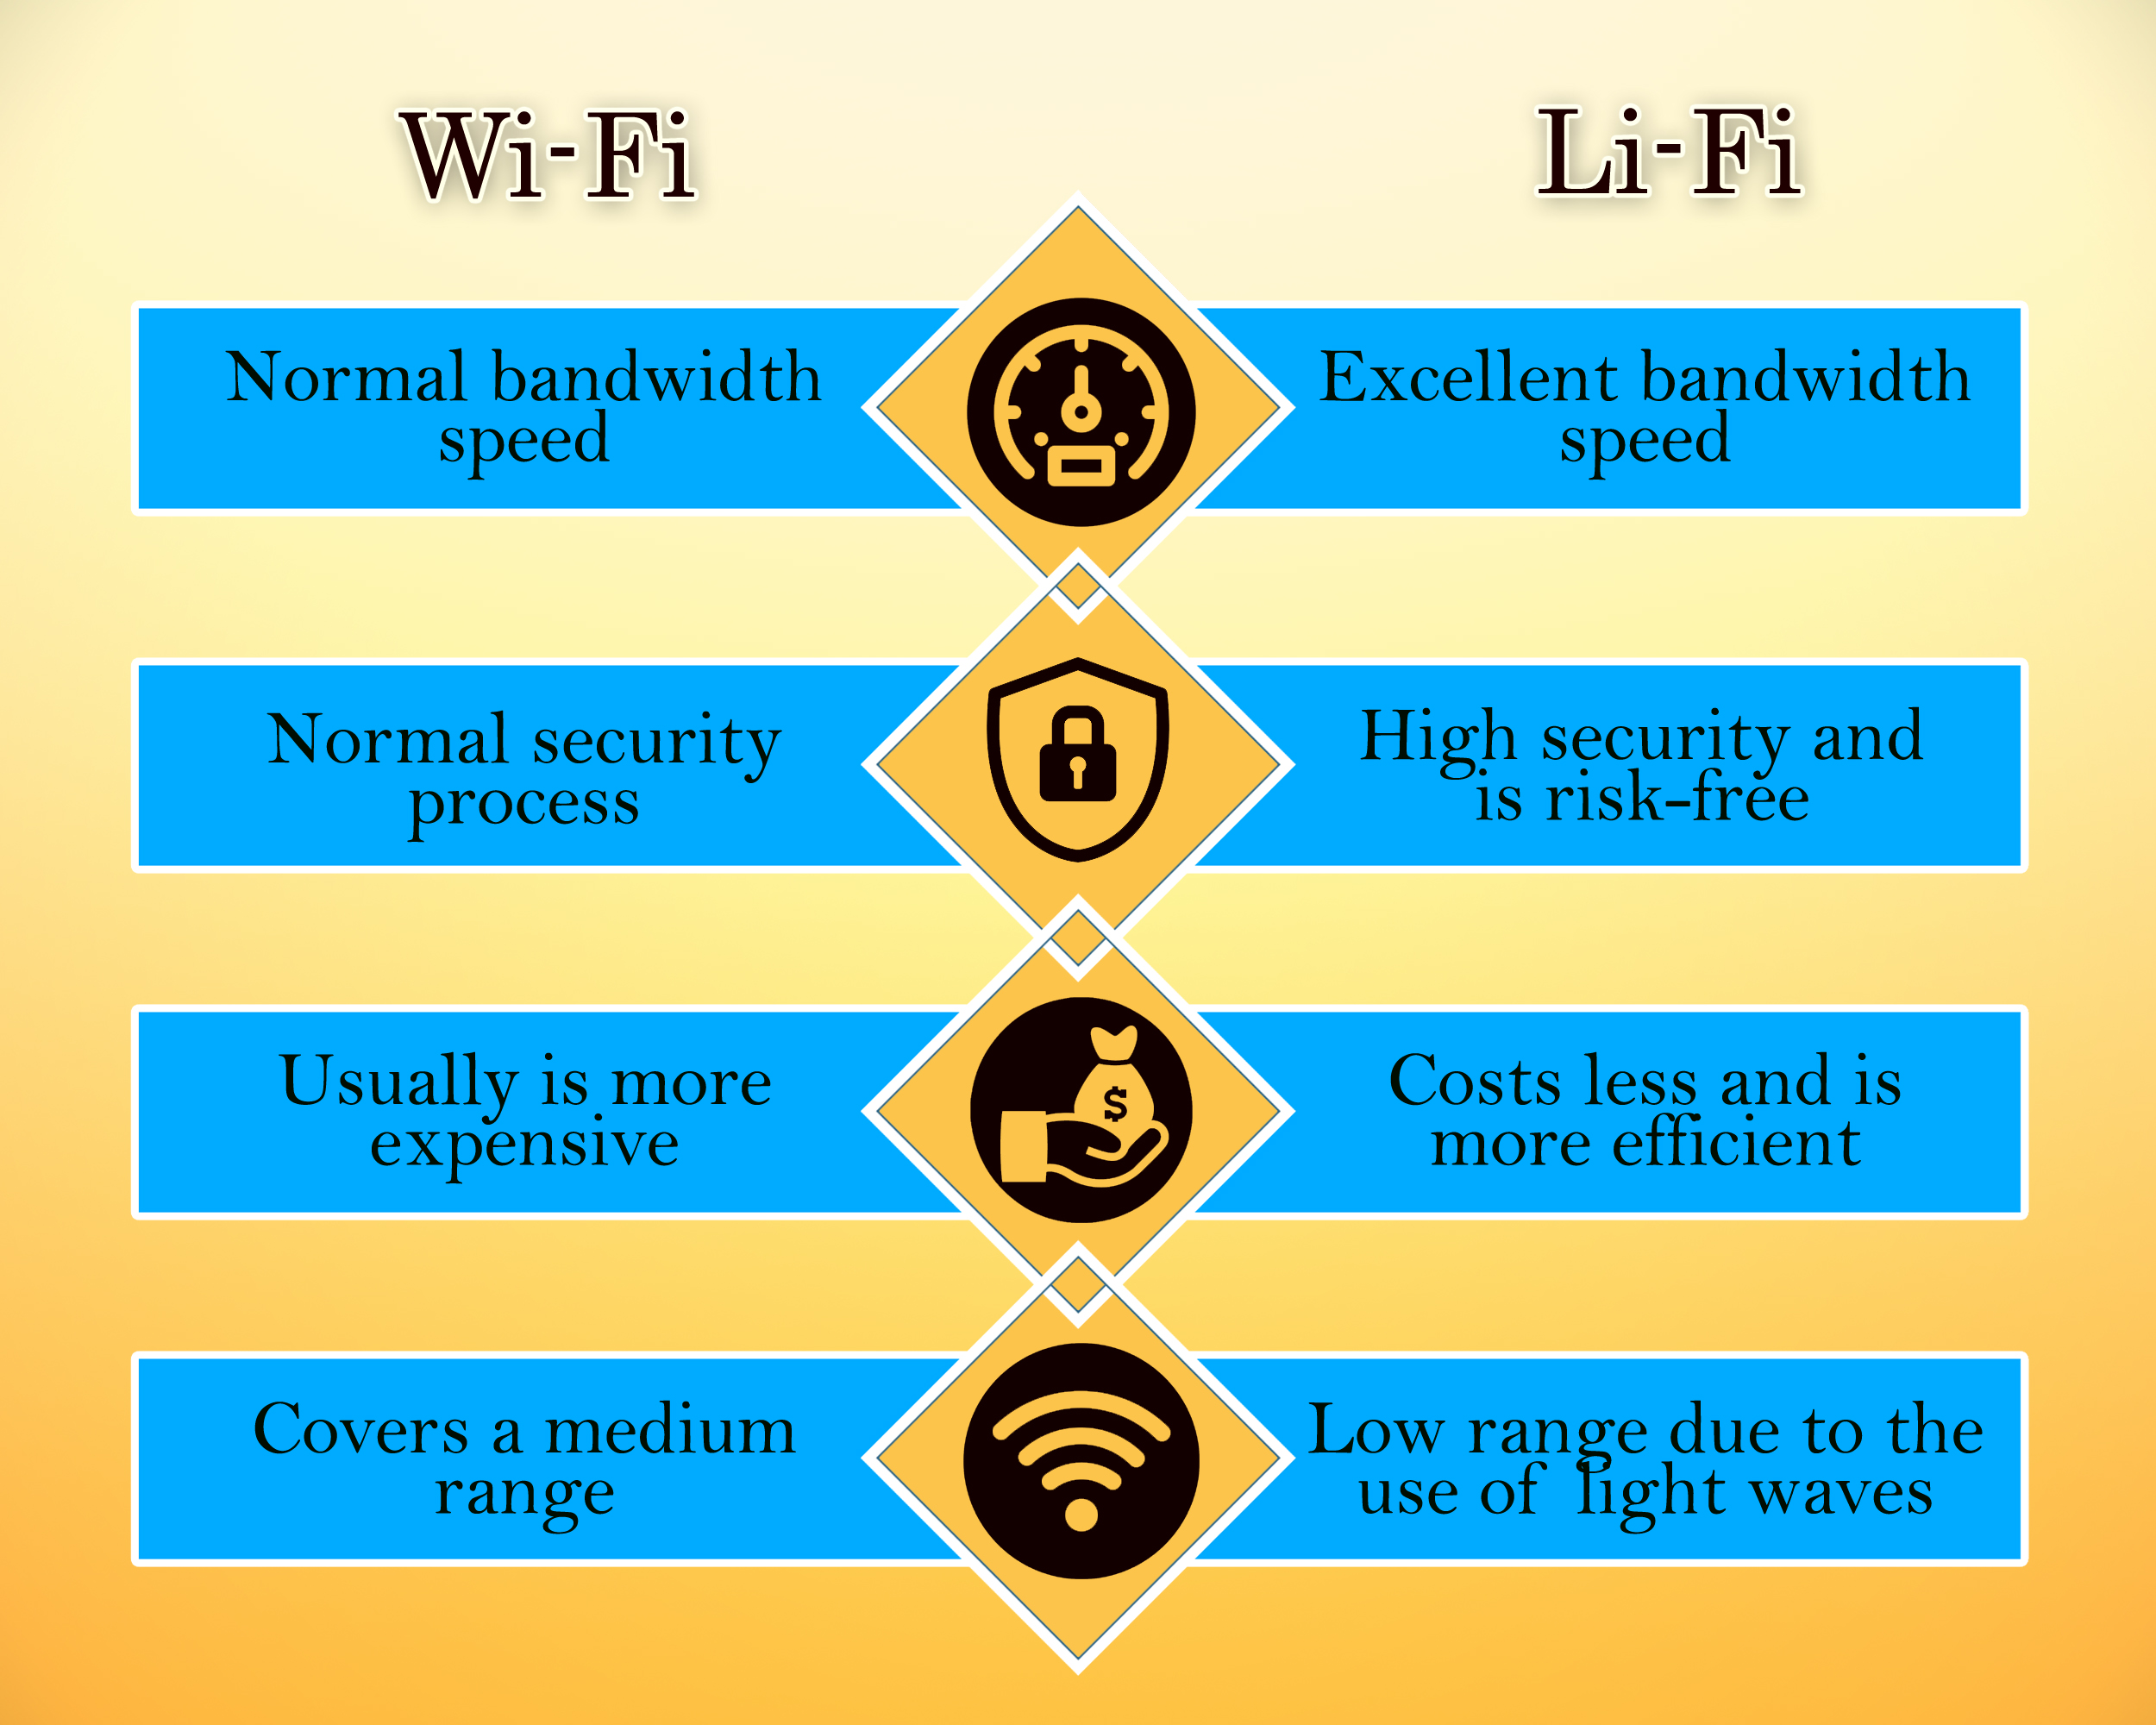 Difference Between Li-Fi and Wi-Fi